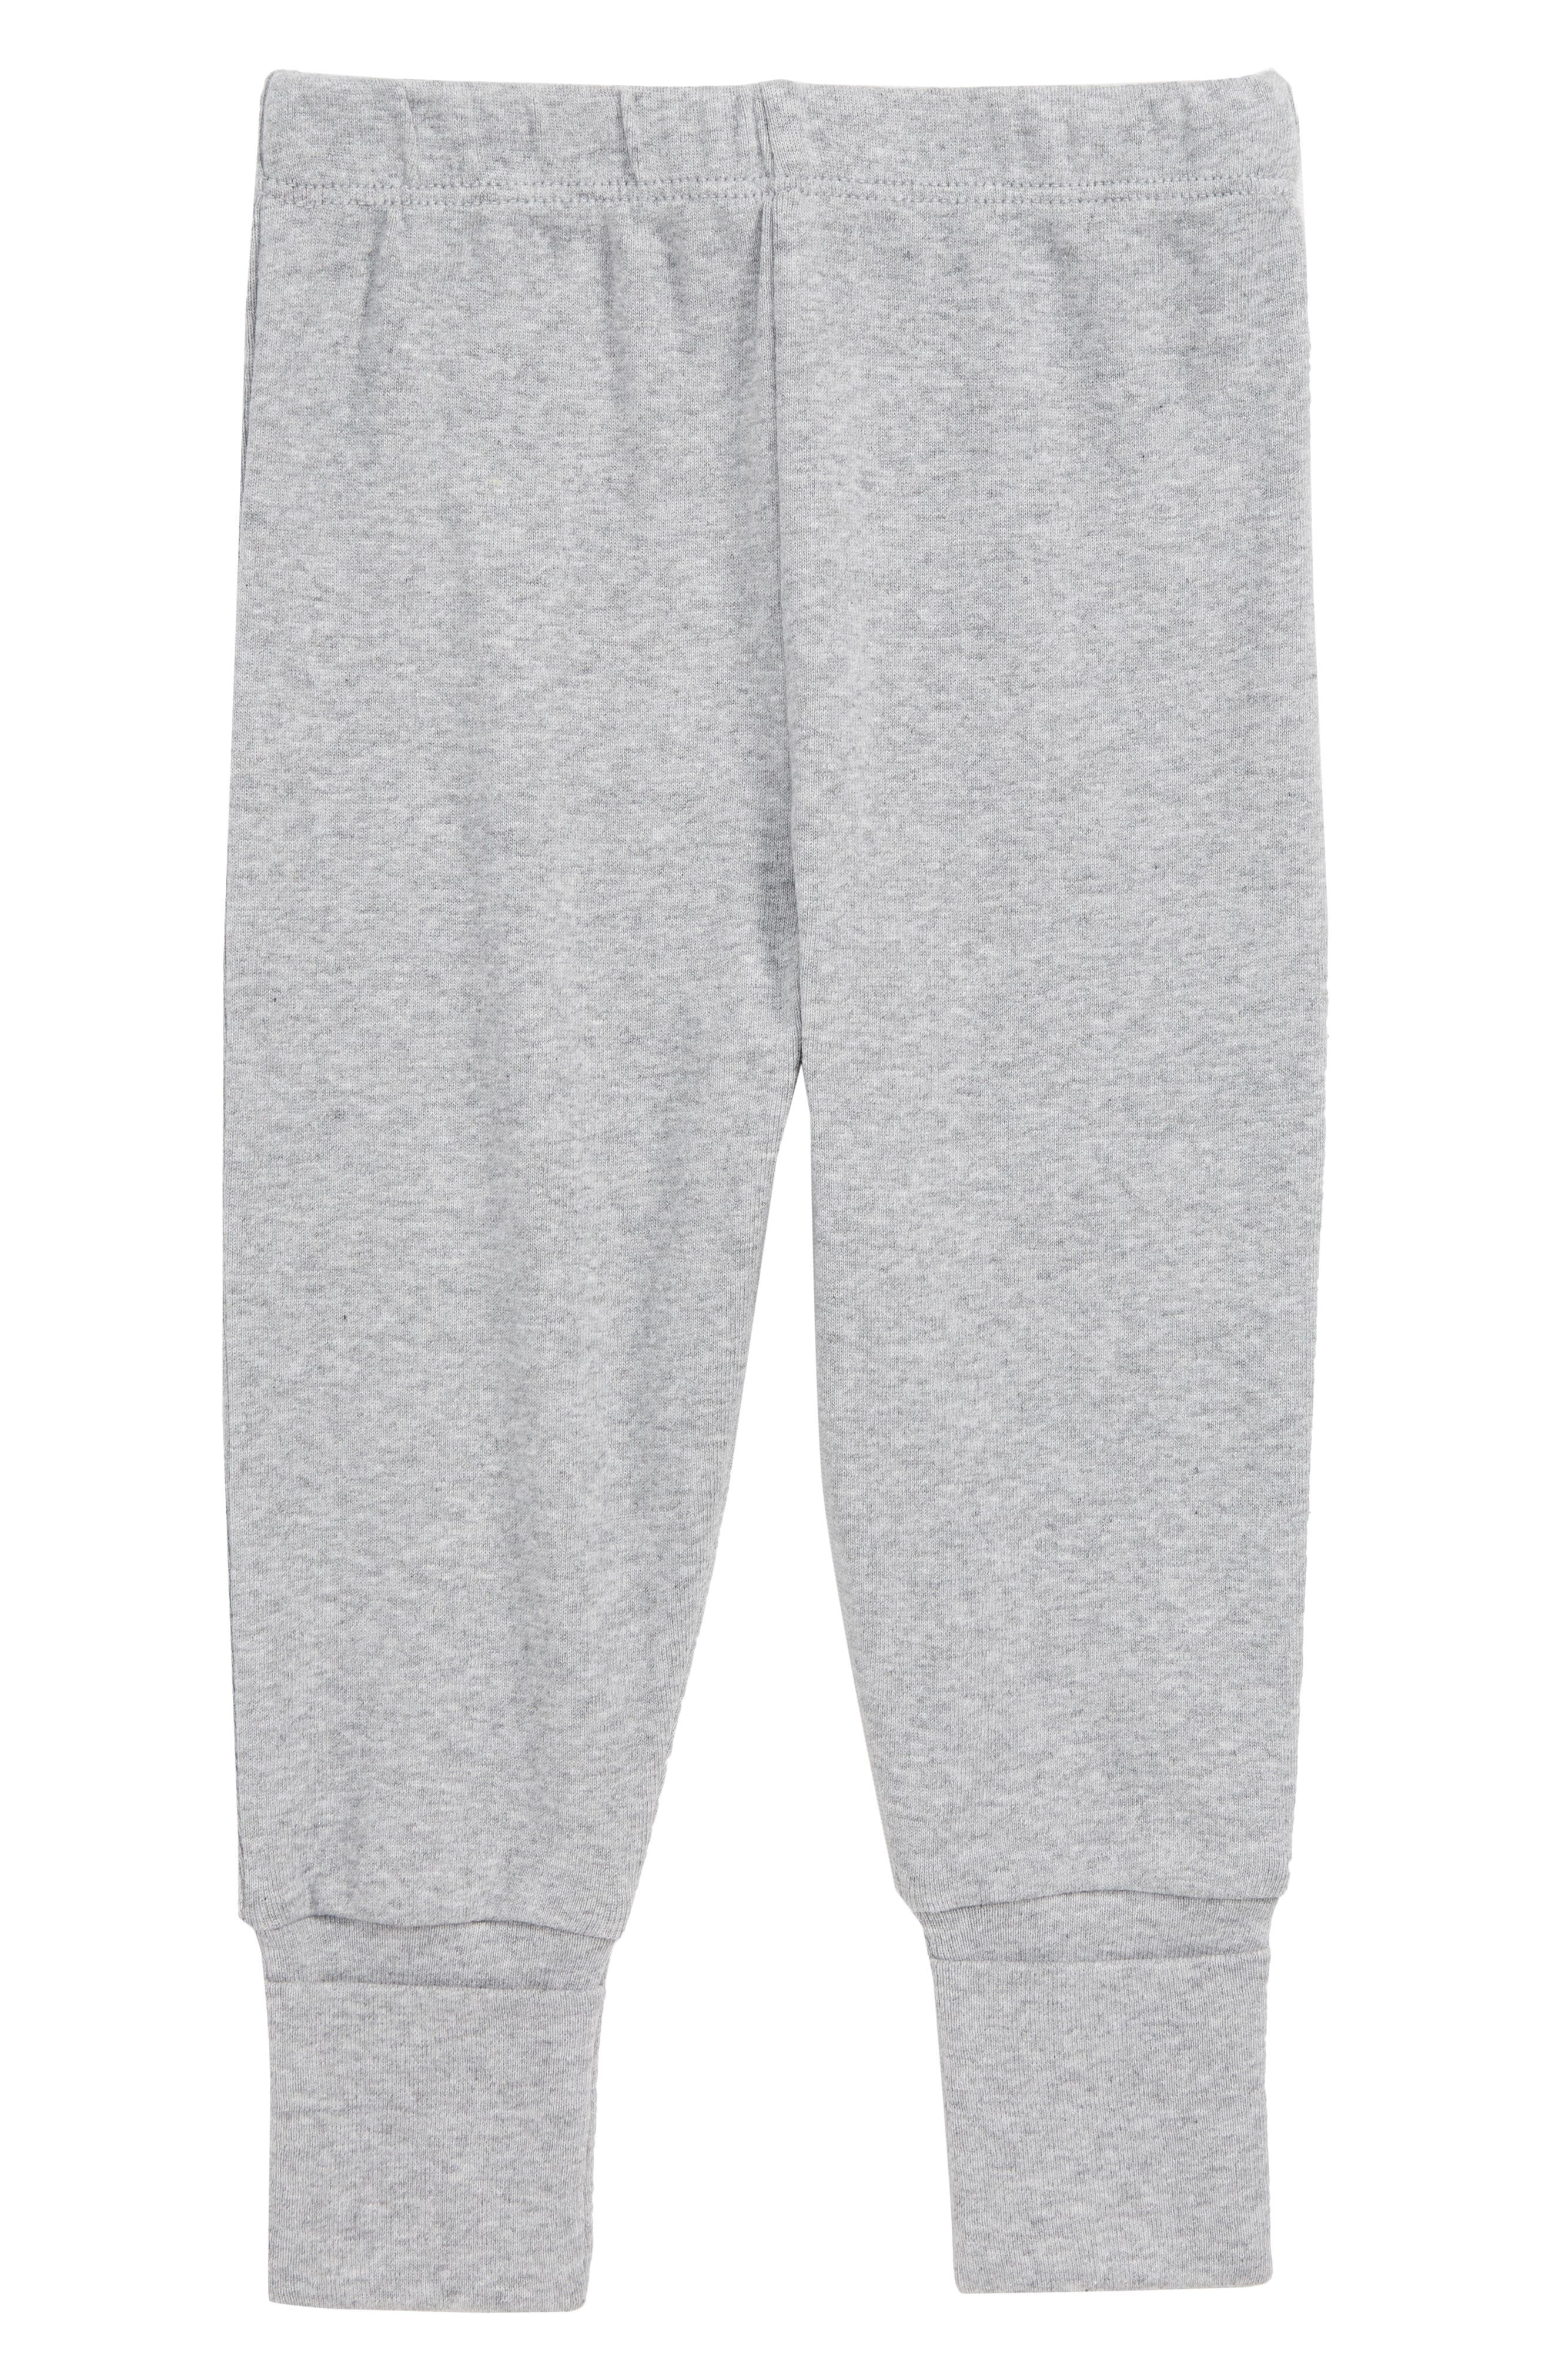 Hello Baby Organic Cotton Sweatpants,                         Main,                         color, 020